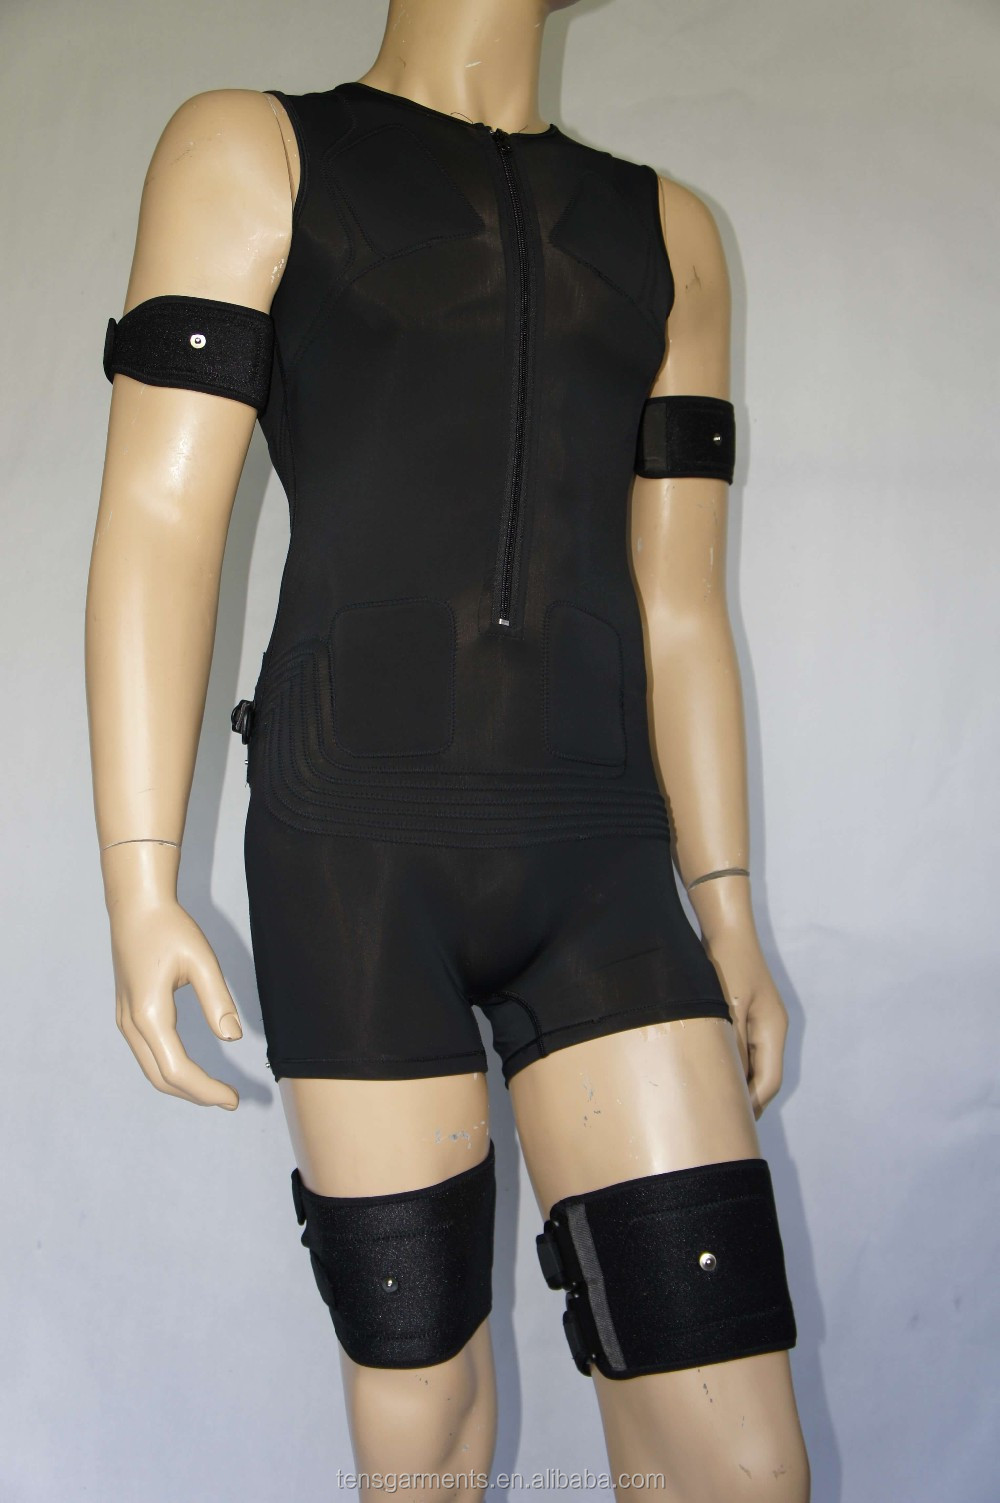 amplitrain ems, ems training suit easy motion skin